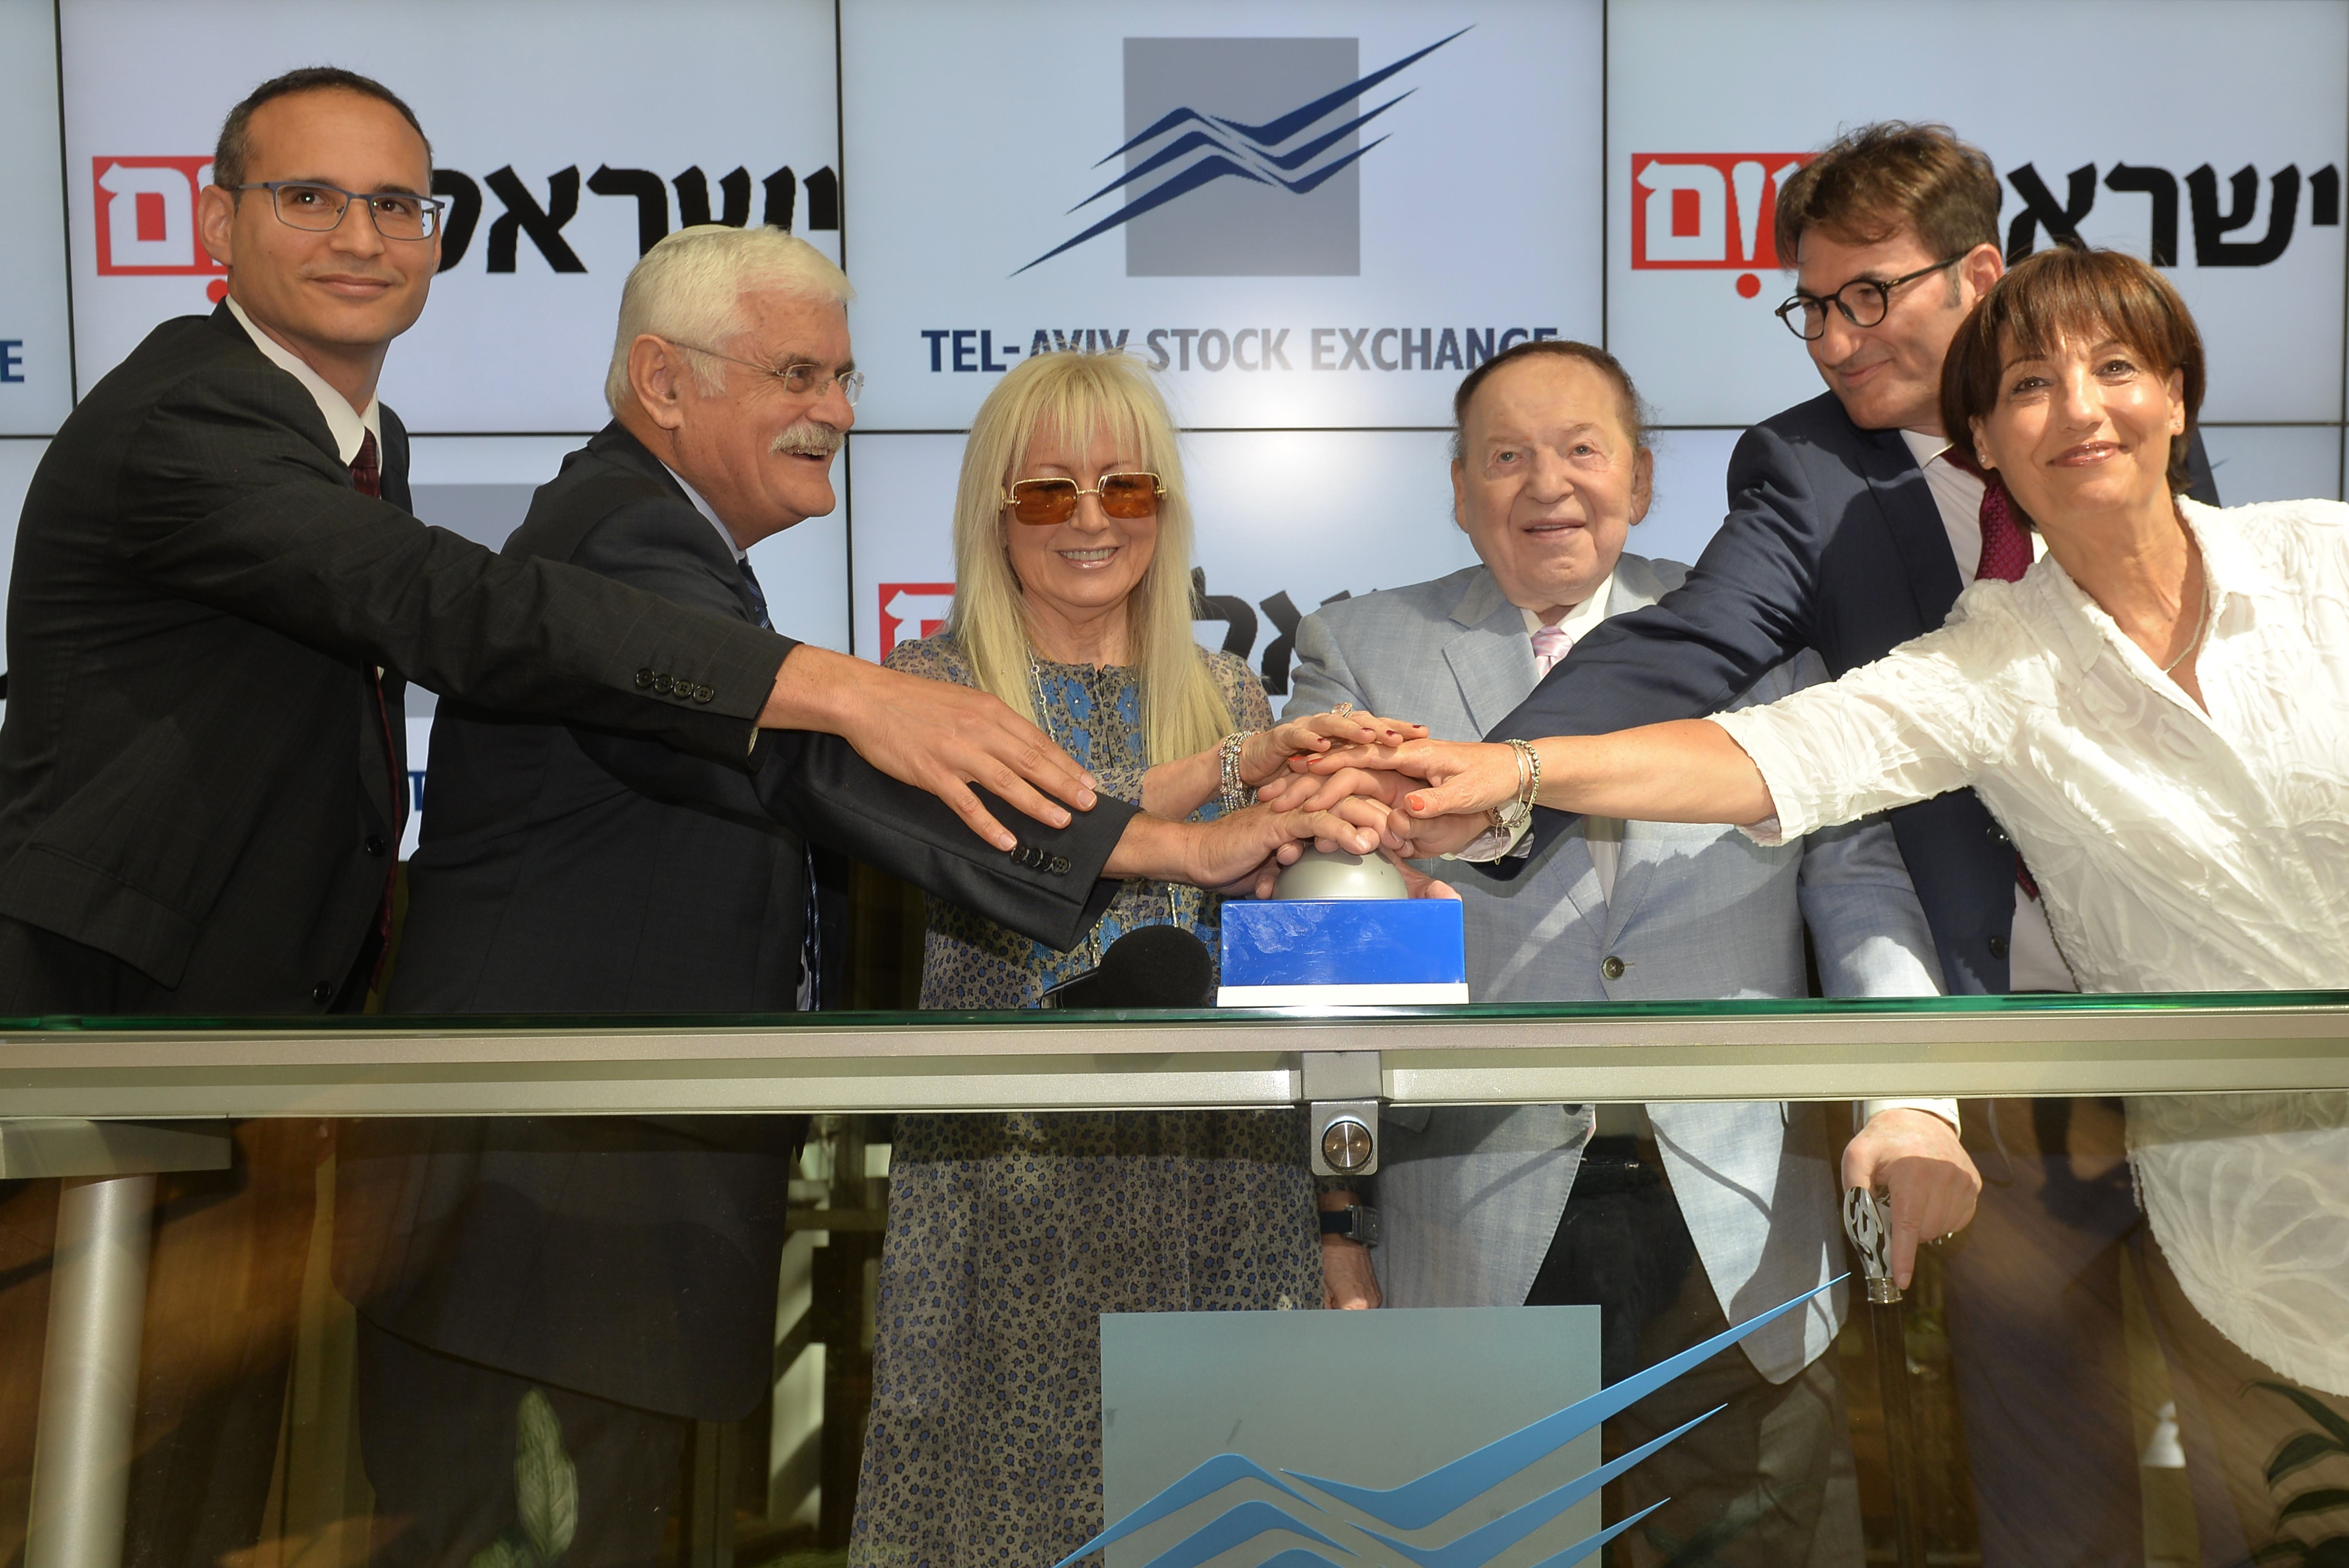 The Management of Israel Today Opened Trading this Morning to mark its 10th anniversary